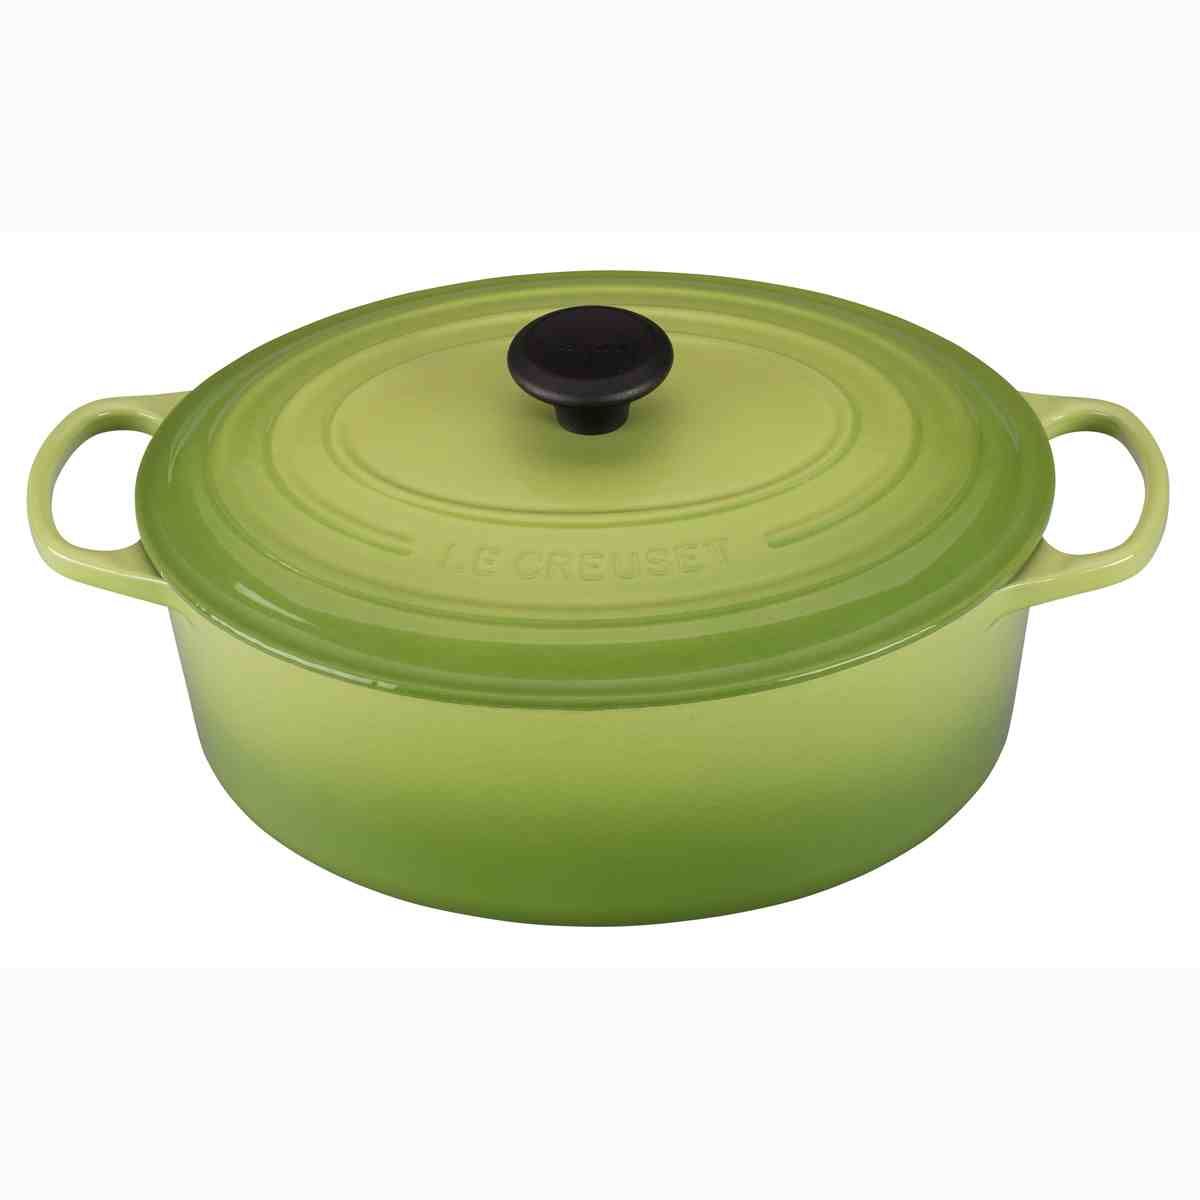 Le Creuset Oval French Oven 6.3L Palm